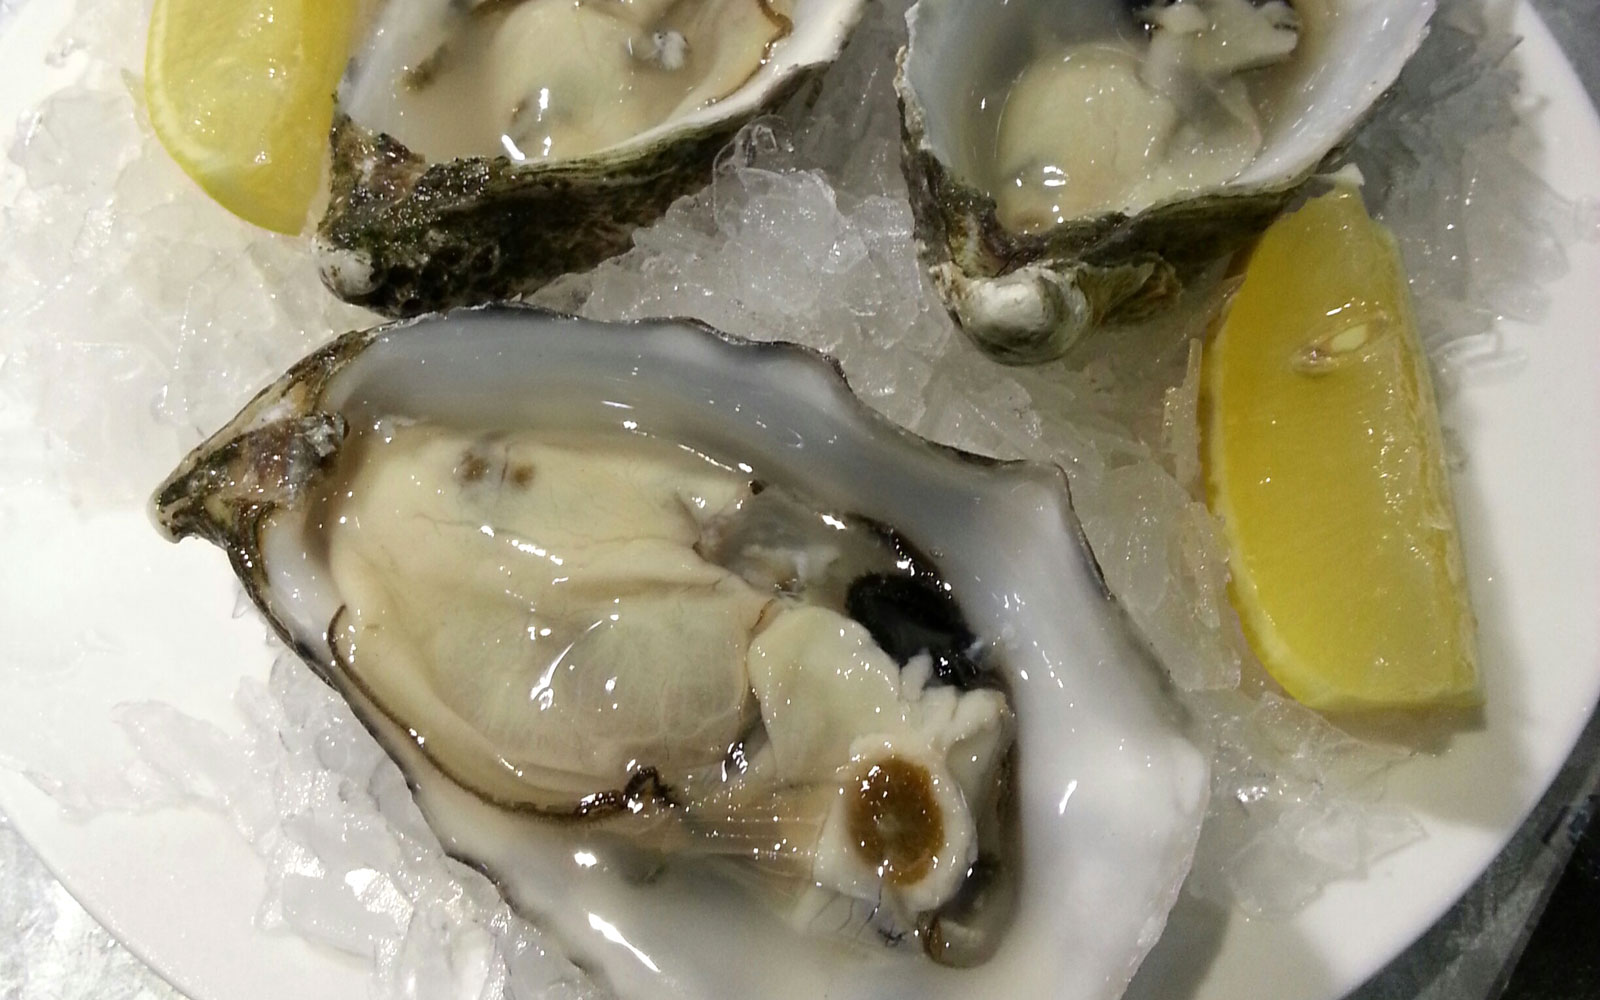 Best Oyster Bars in America: Casamento's Restaurant, New Orleans